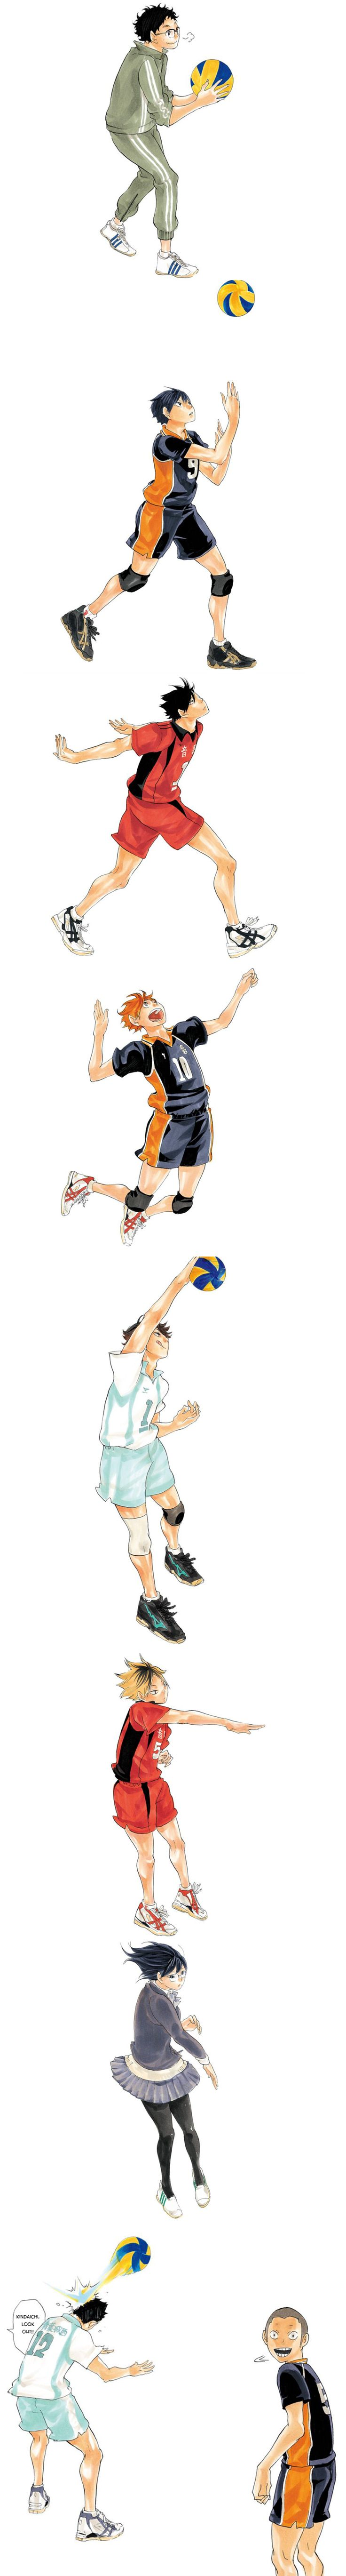 nICE SERVE NICE SERVE>>they're beauty they're grace they'll serve you in you face(or the back of your head)